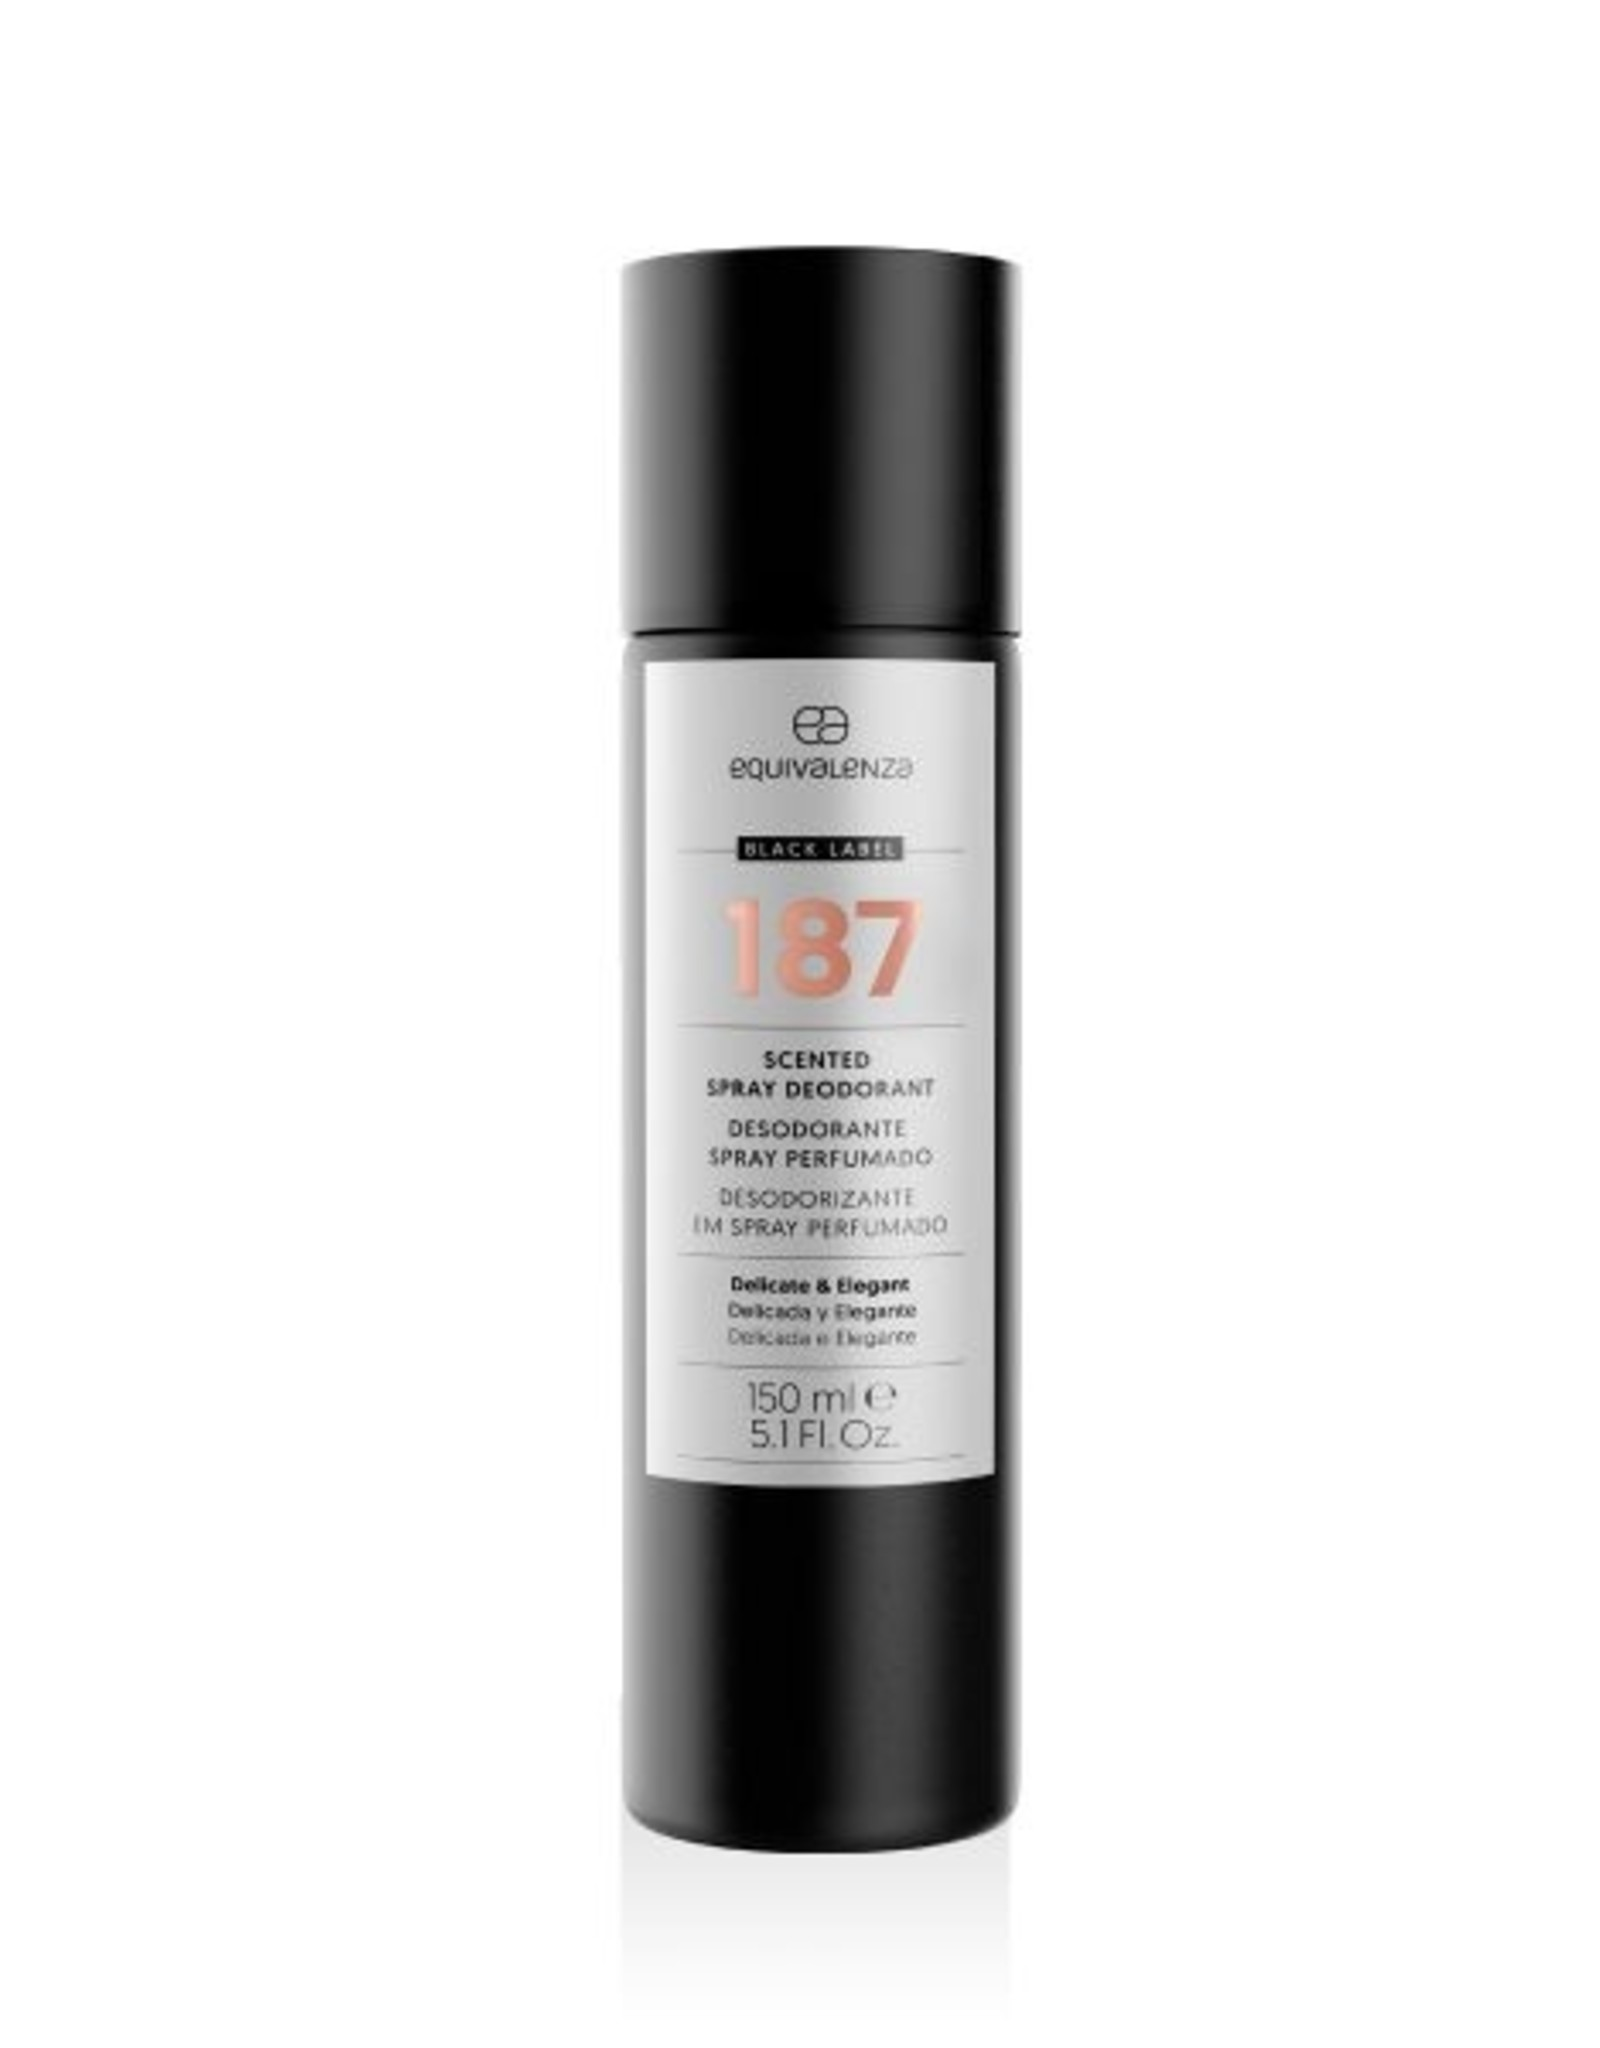 Equivalenza Déodorant Black Label 187